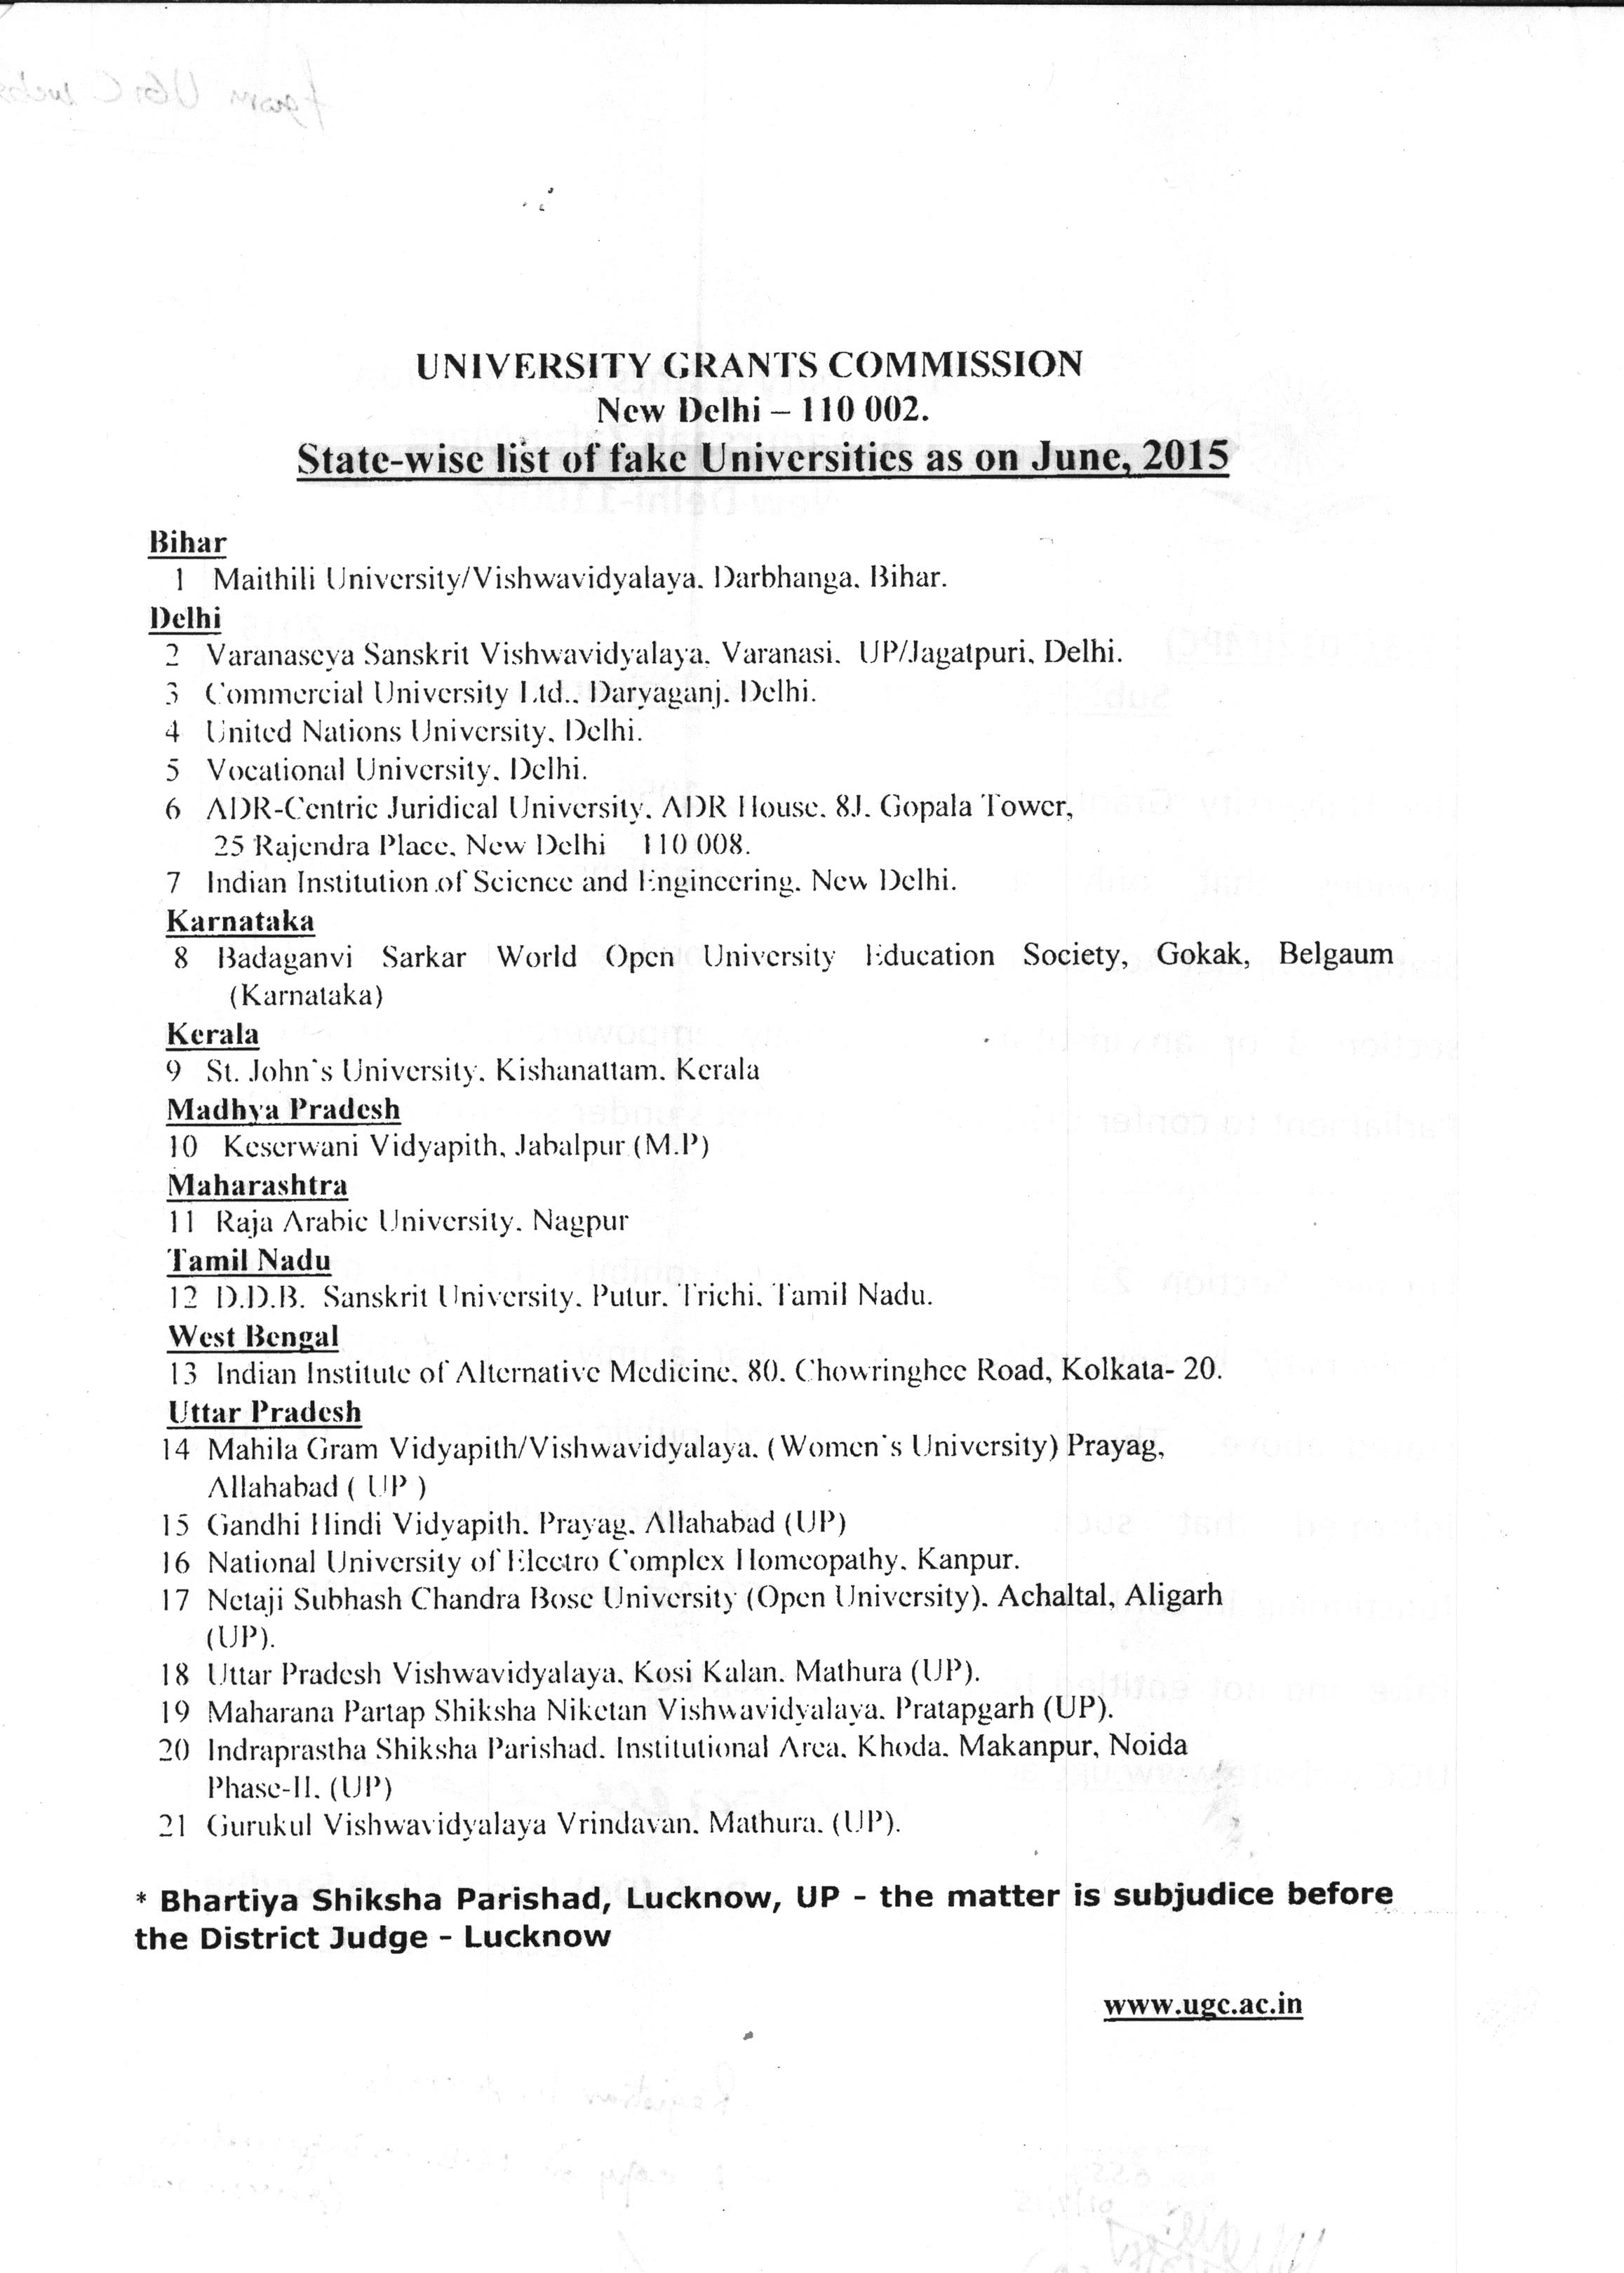 Central University Of Punjab Statewise List Of Fake Universities As On June